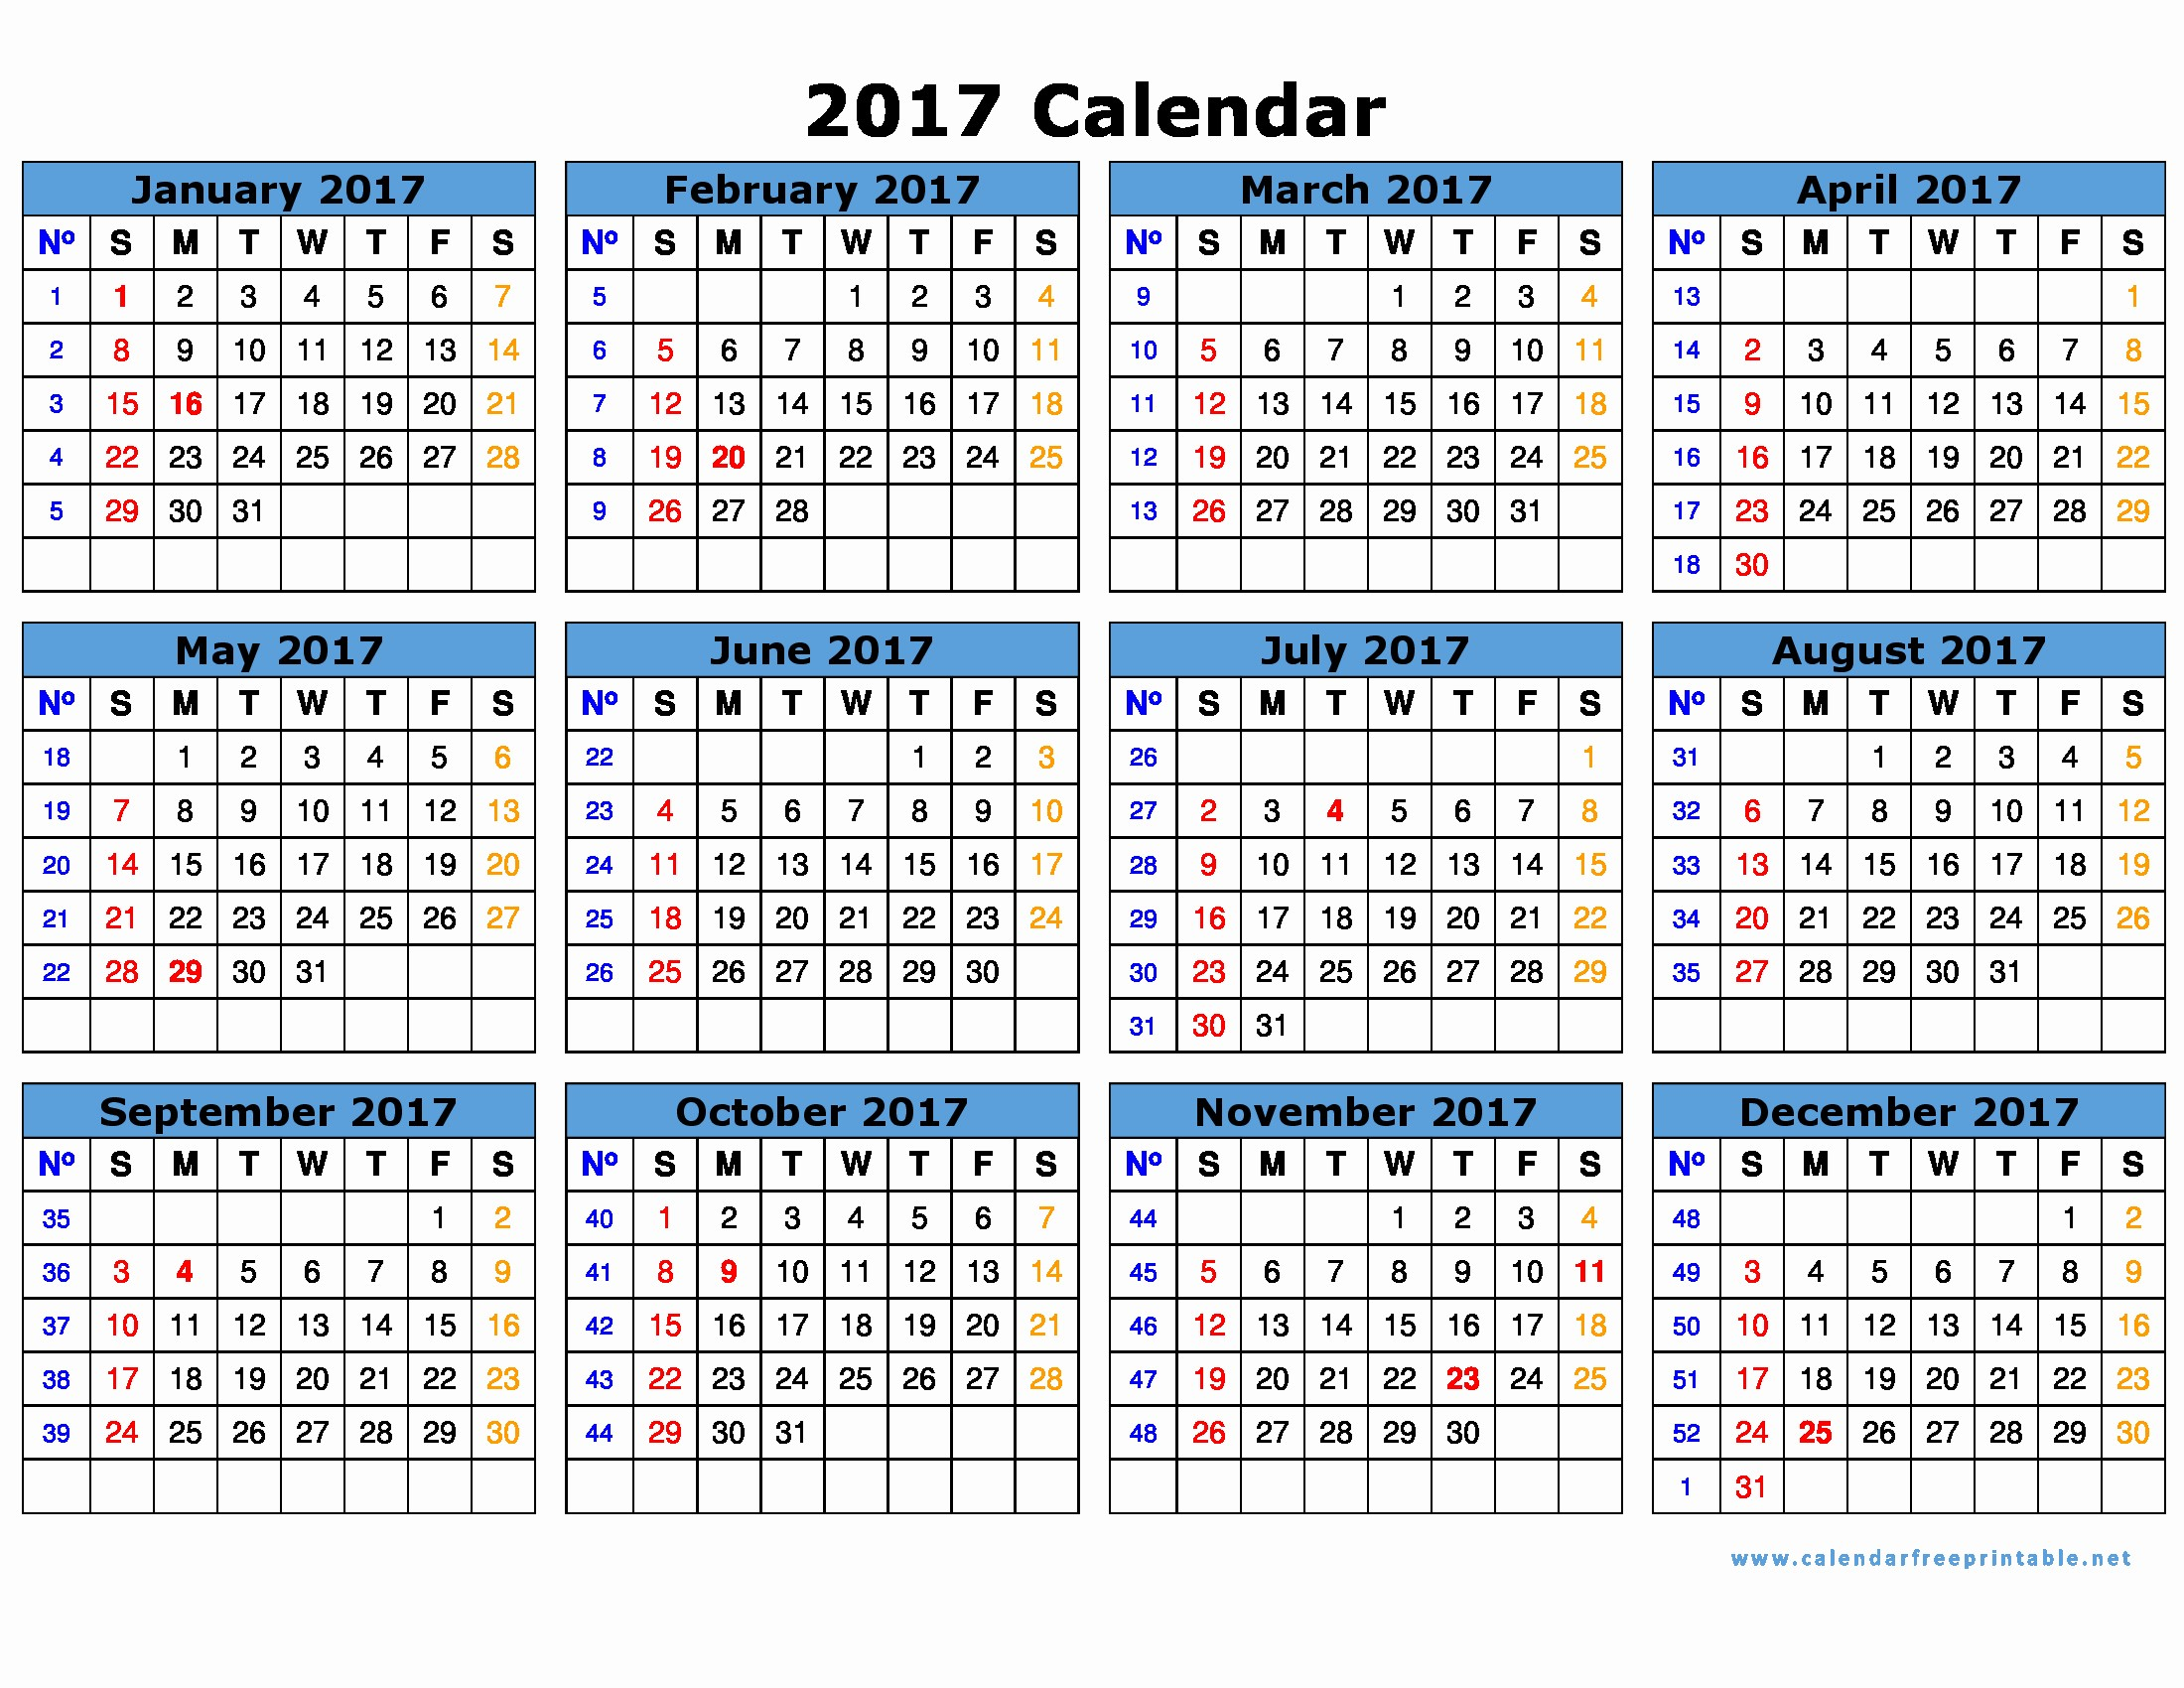 Excel 2017 Calendar with Holidays Best Of Free 2017 Calendar with Holidays